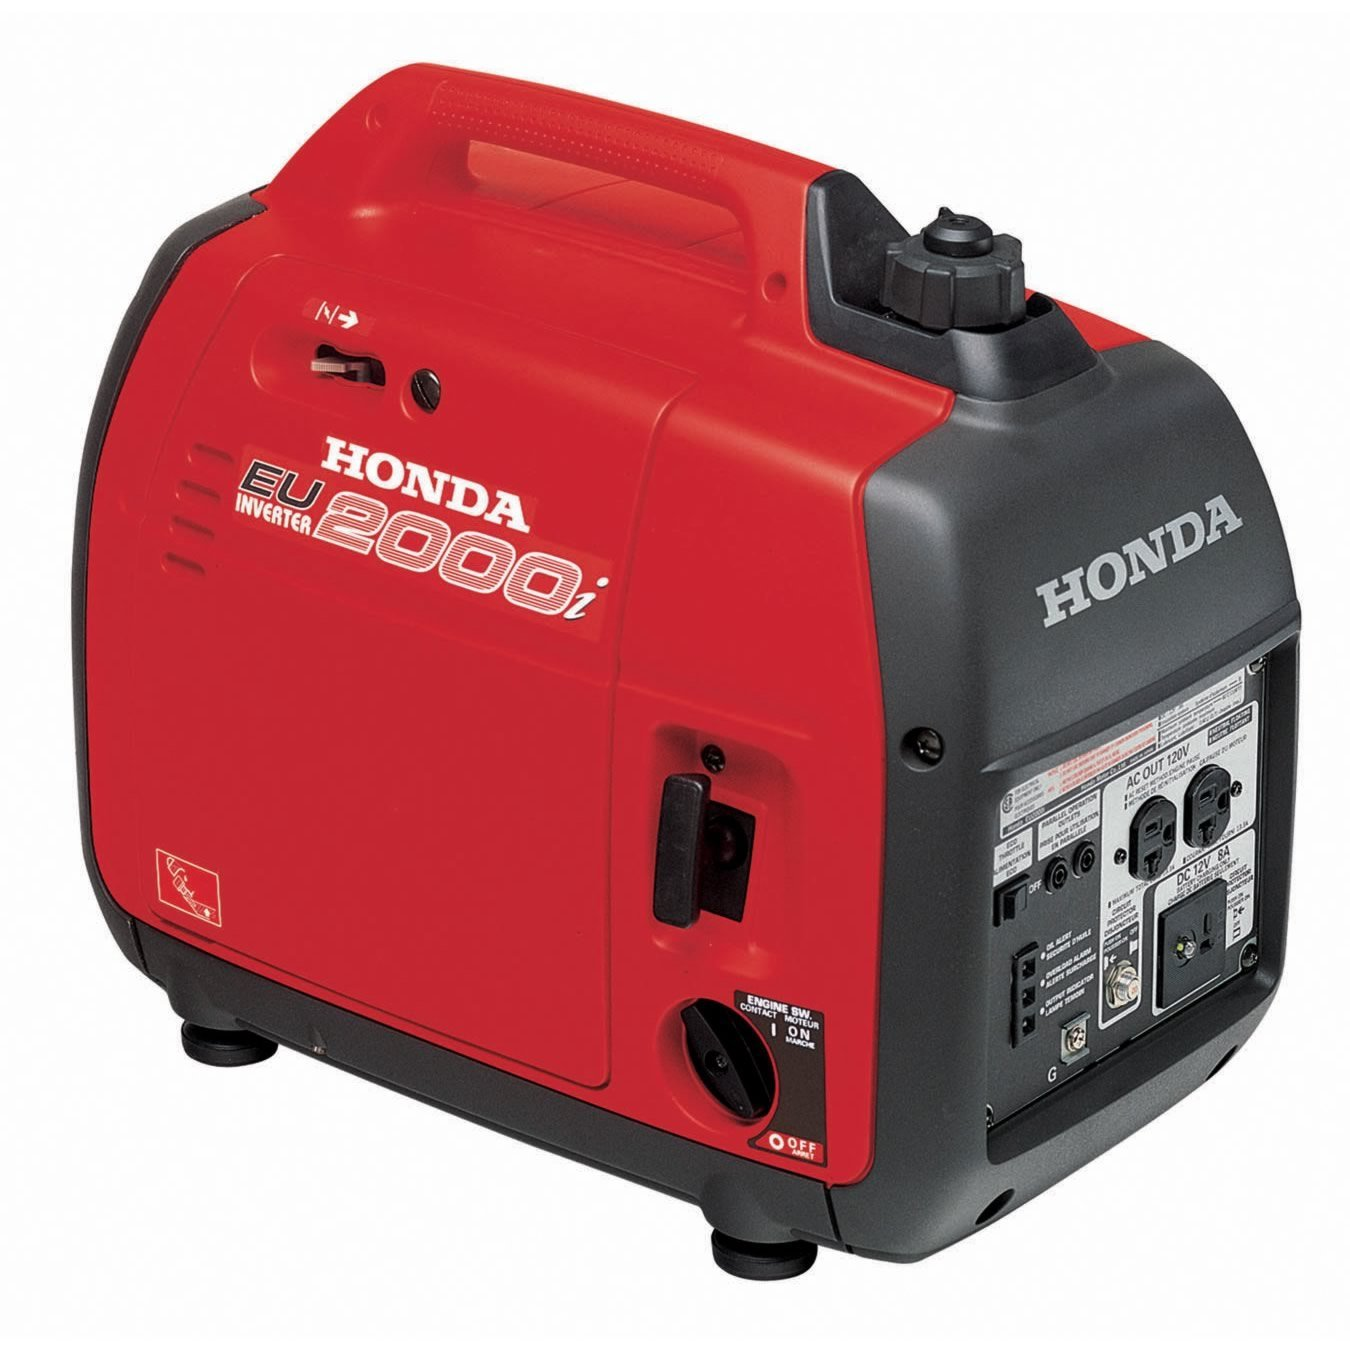 Honda EU20001 Review